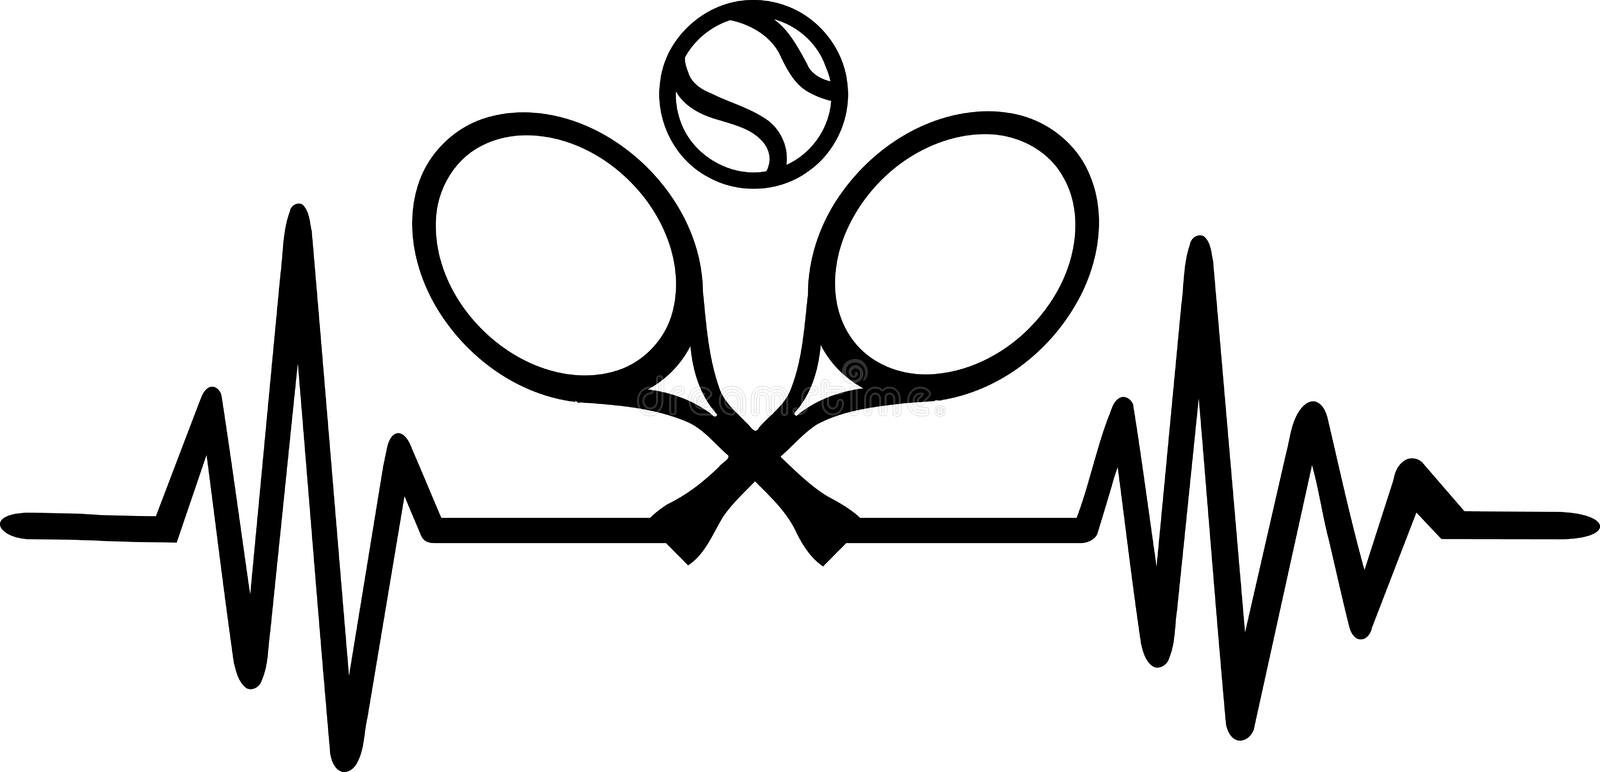 Tennis heartbeat pulse. Heartbeat pulse line with tennis ball vector illustration